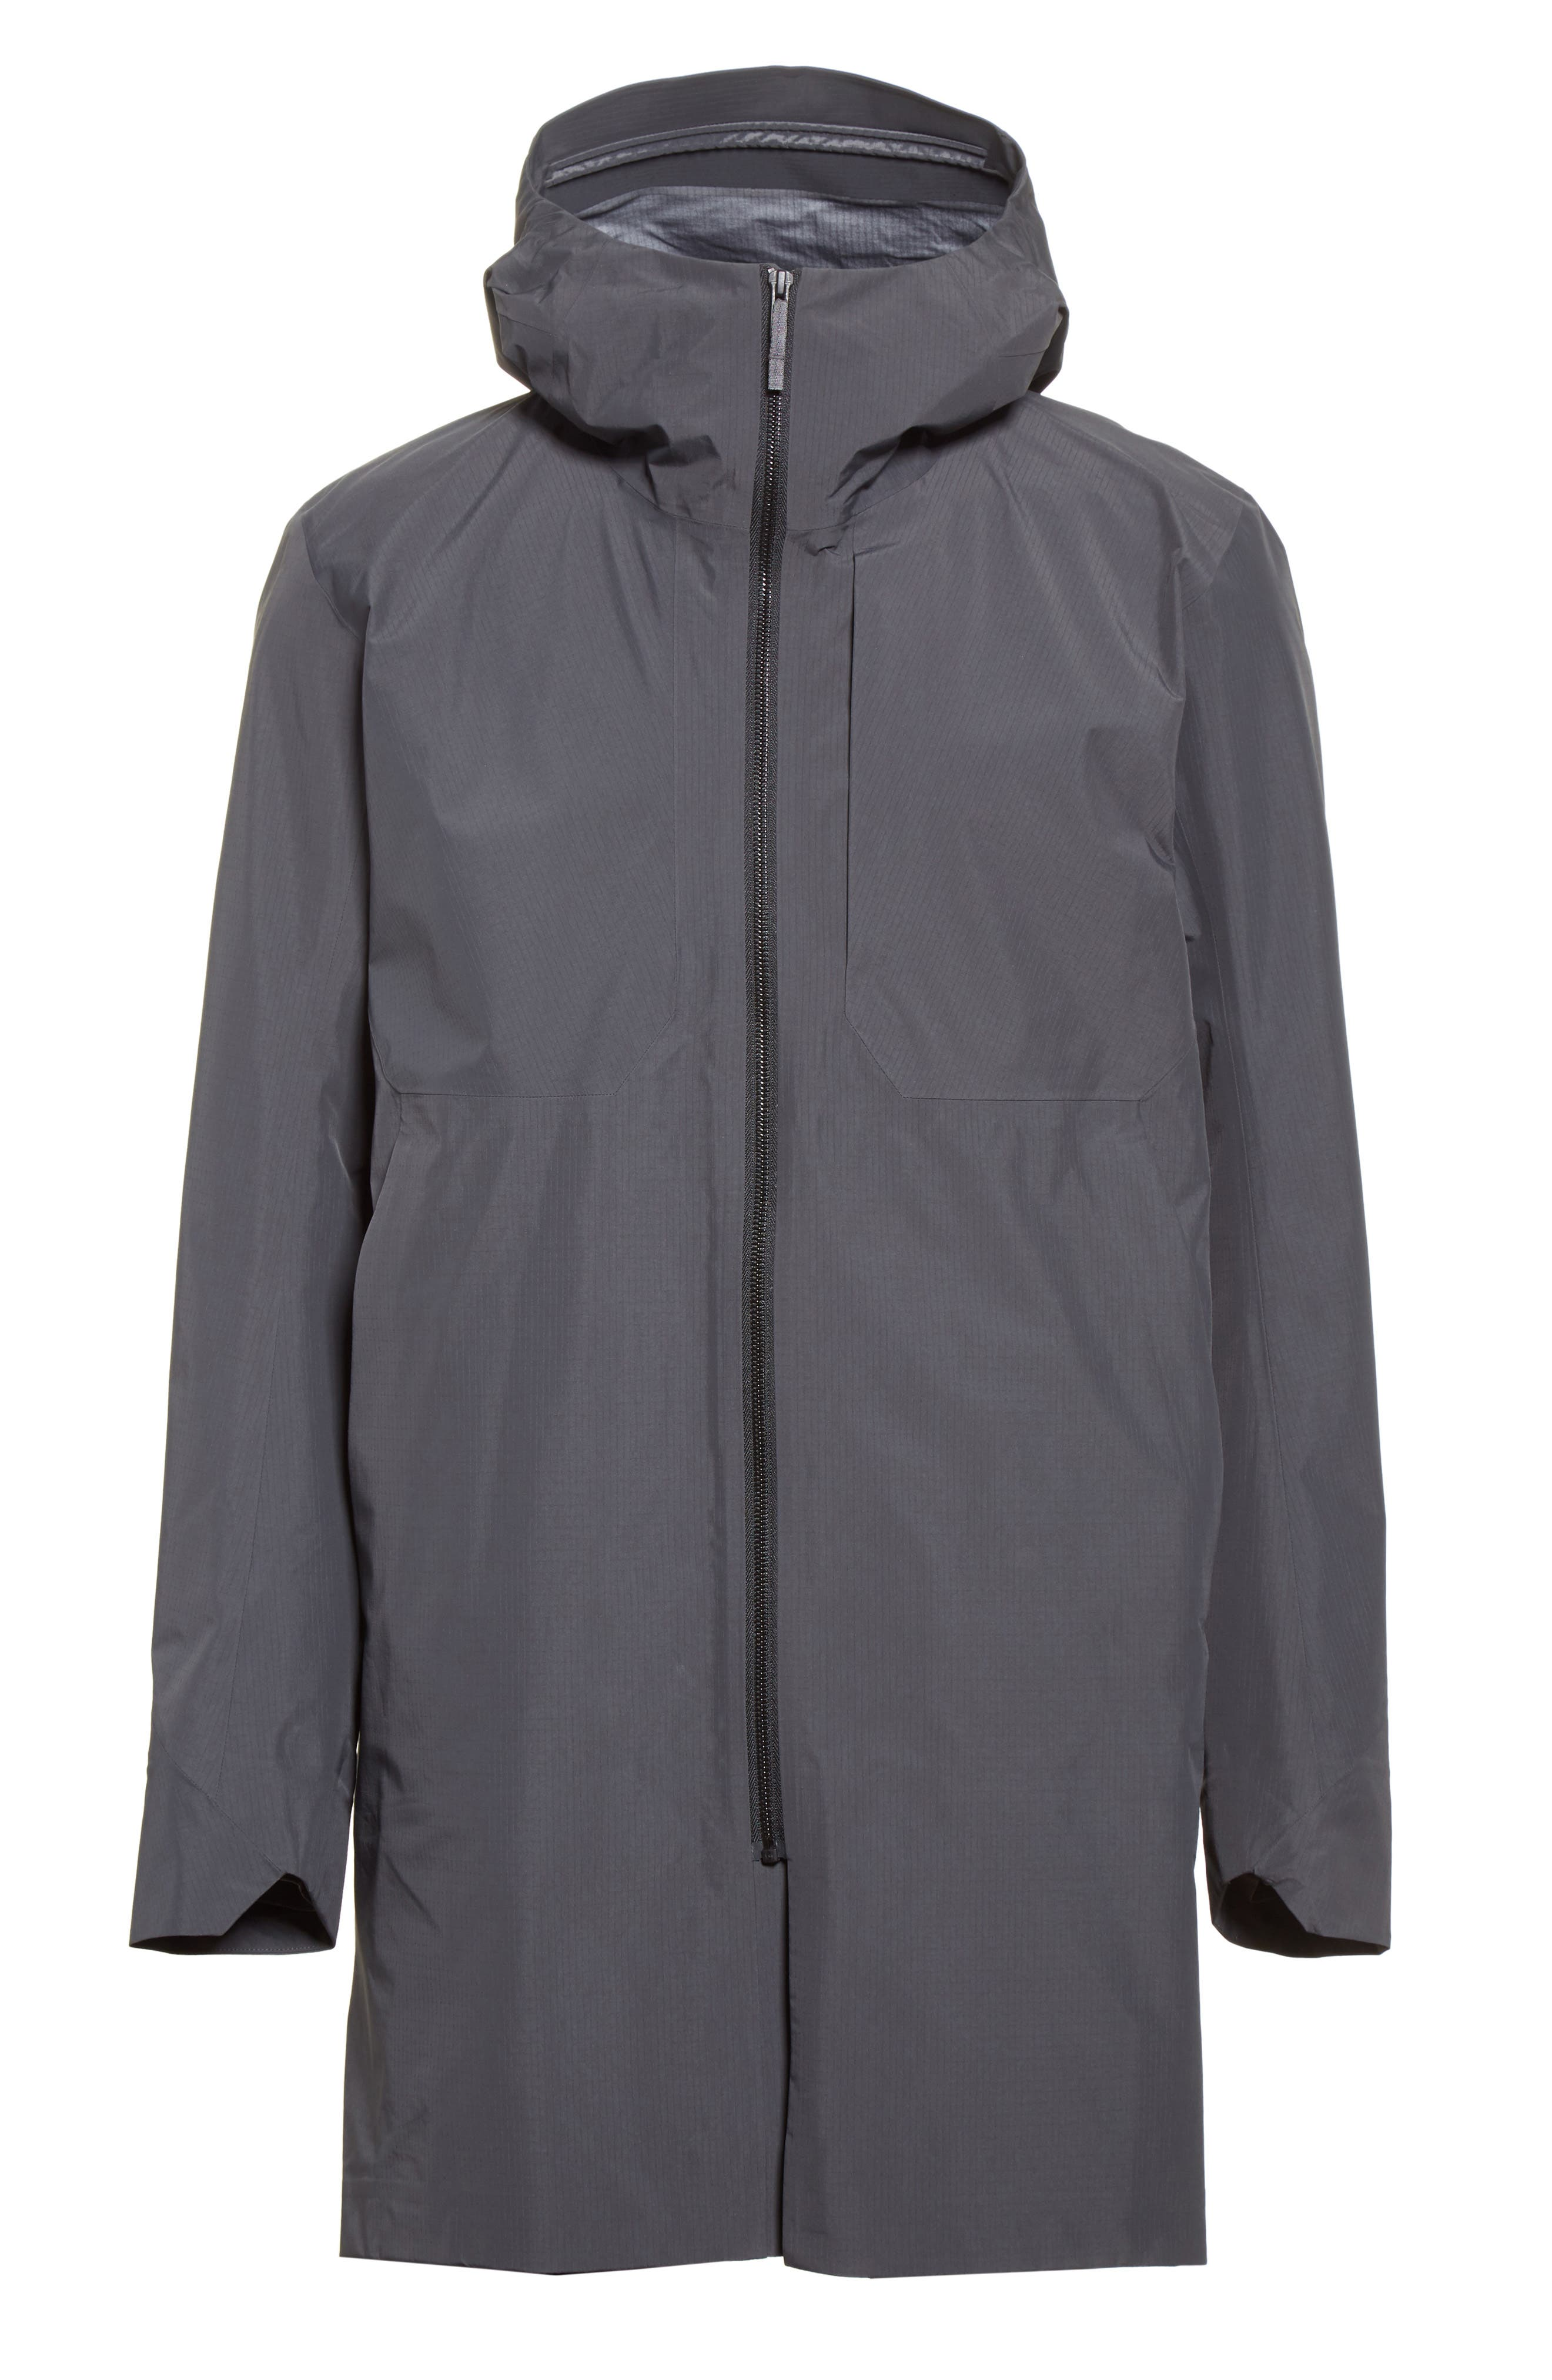 'Monitor' Gore-Tex<sup>®</sup> Pro Packable Hooded Jacket,                             Alternate thumbnail 2, color,                             020